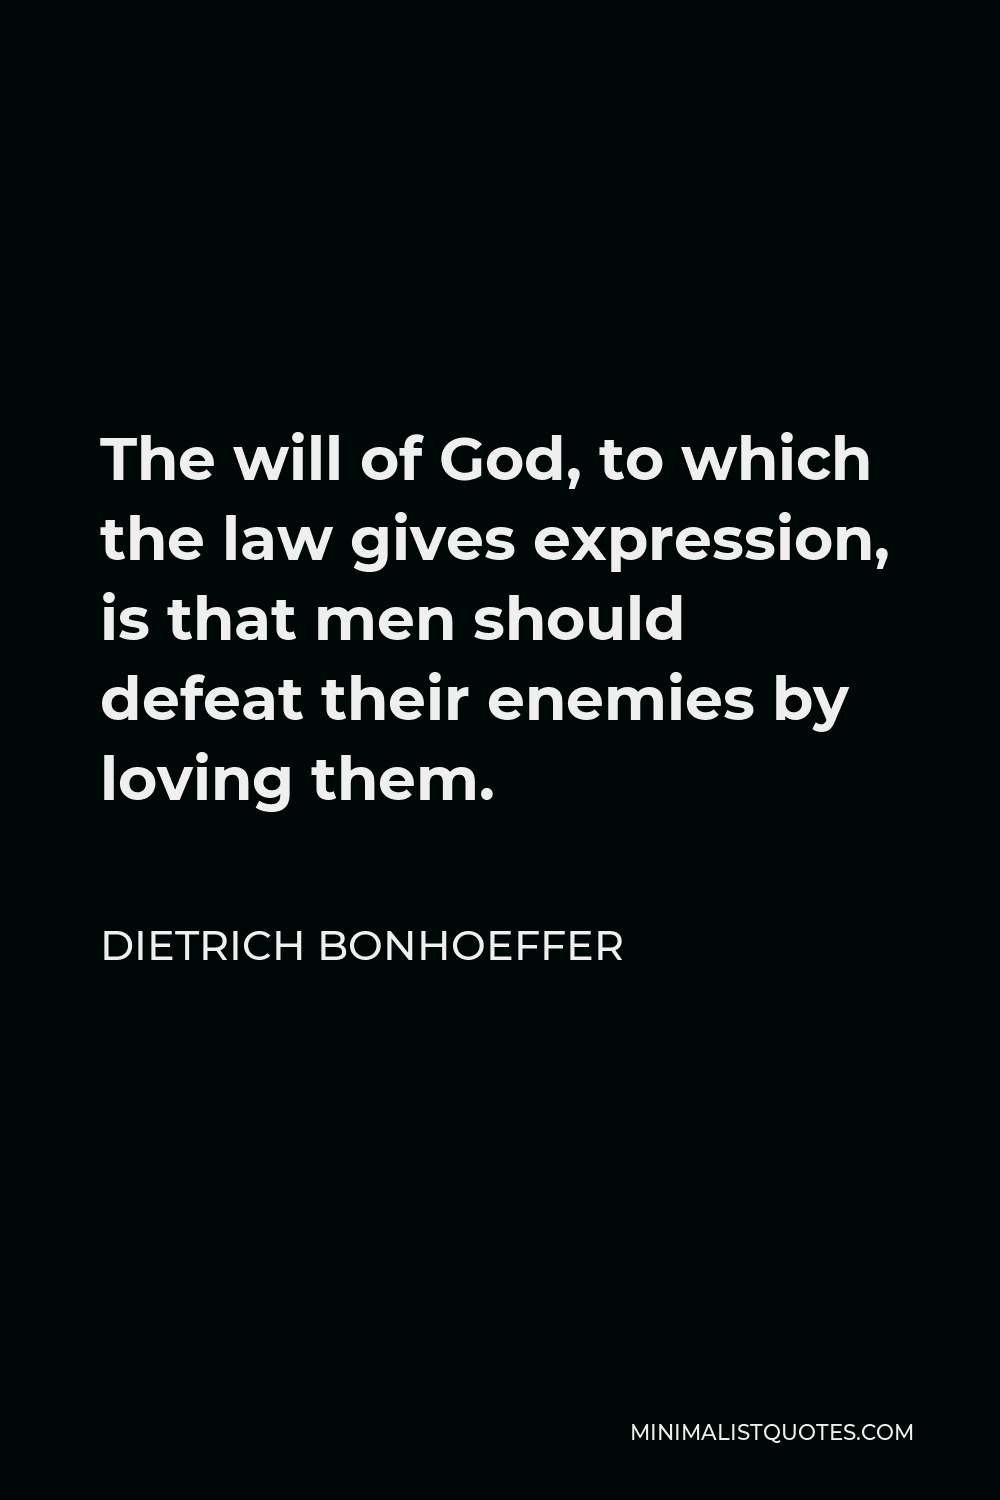 Dietrich Bonhoeffer Quote - The will of God, to which the law gives expression, is that men should defeat their enemies by loving them.